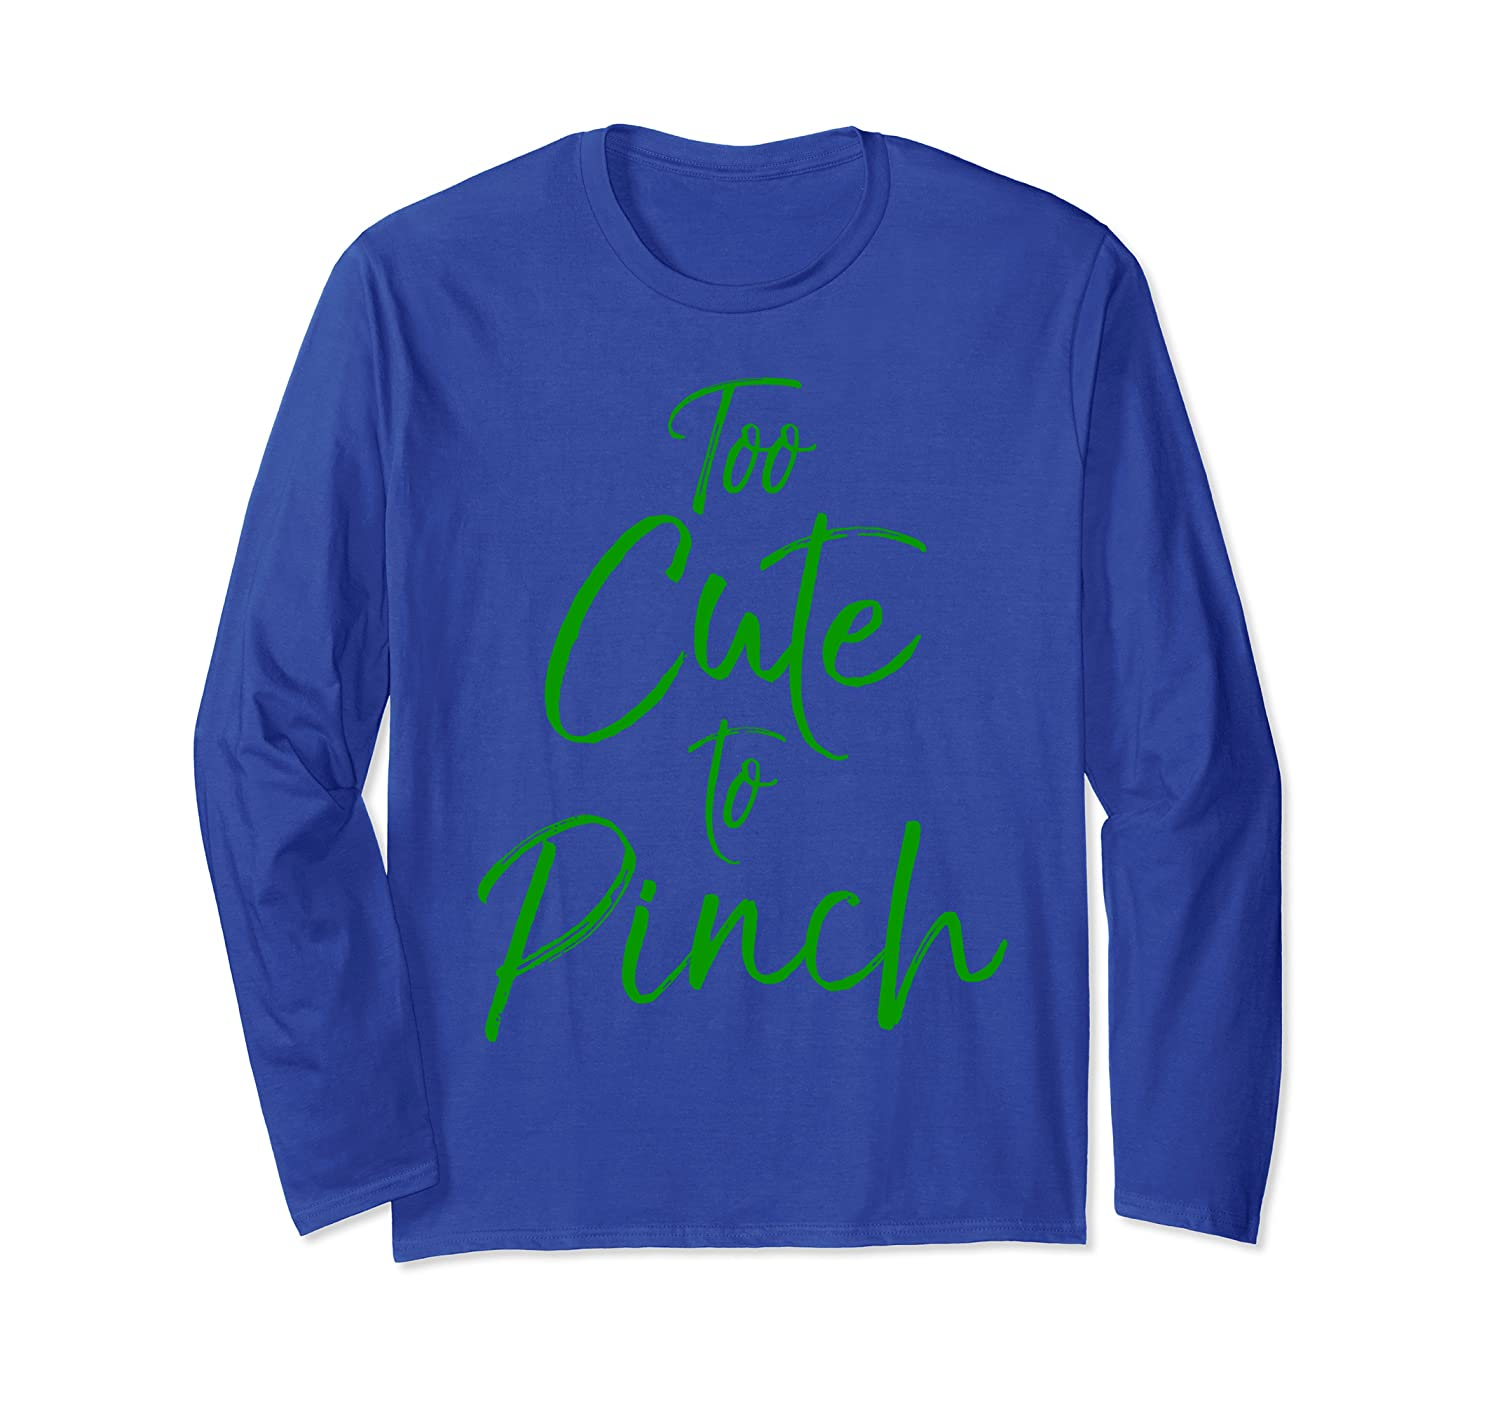 Green St. Patrick's Day Quote Funny Gift Too Cute to Pinch Long Sleeve T-Shirt-Yolotee